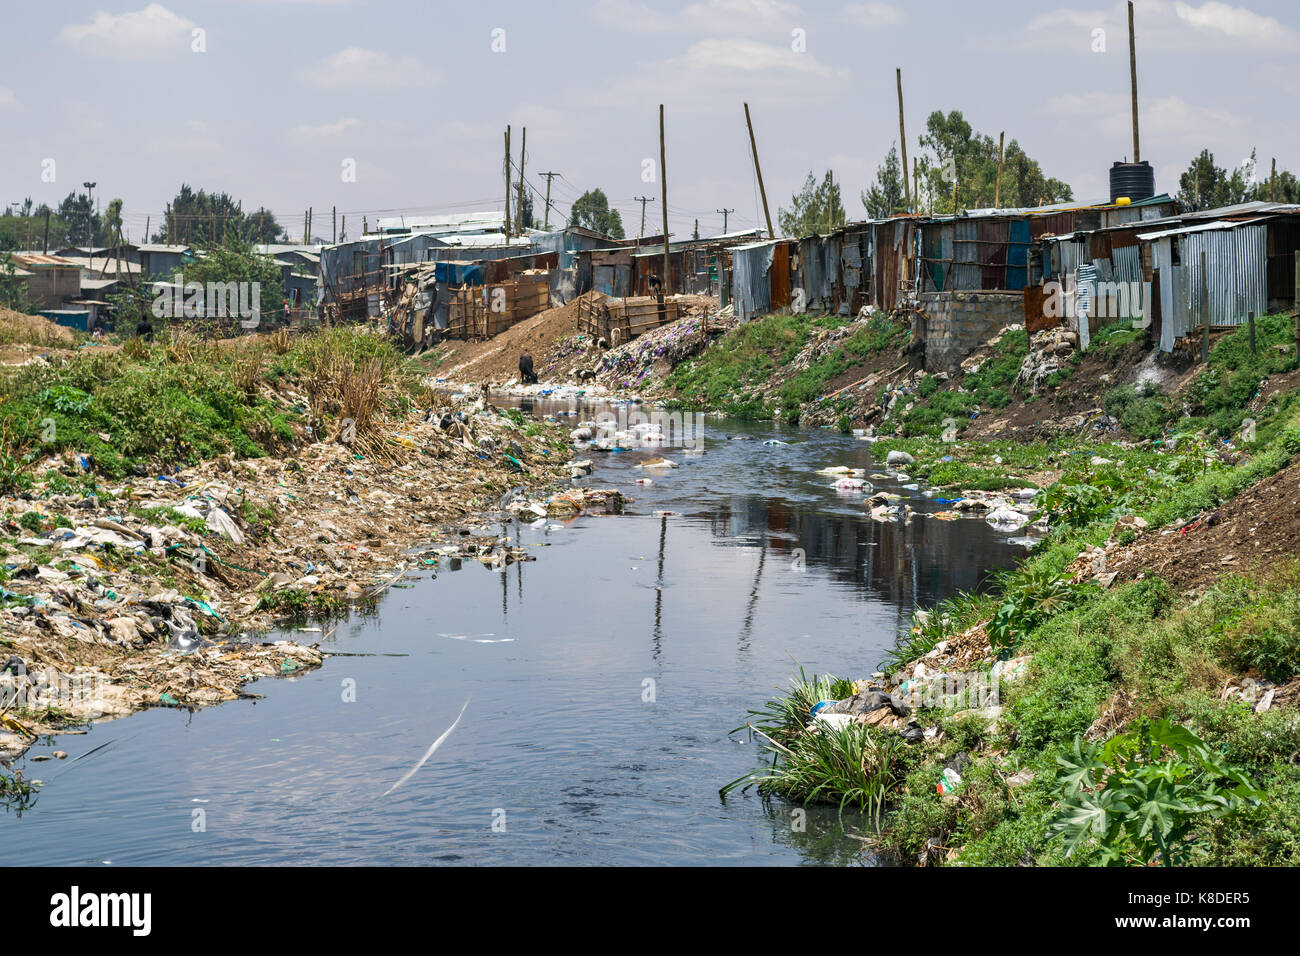 Slum shacks and buildings line the Ngong river which is polluted with rubbish, plastic waste and garbage, Nairobi, - Stock Image